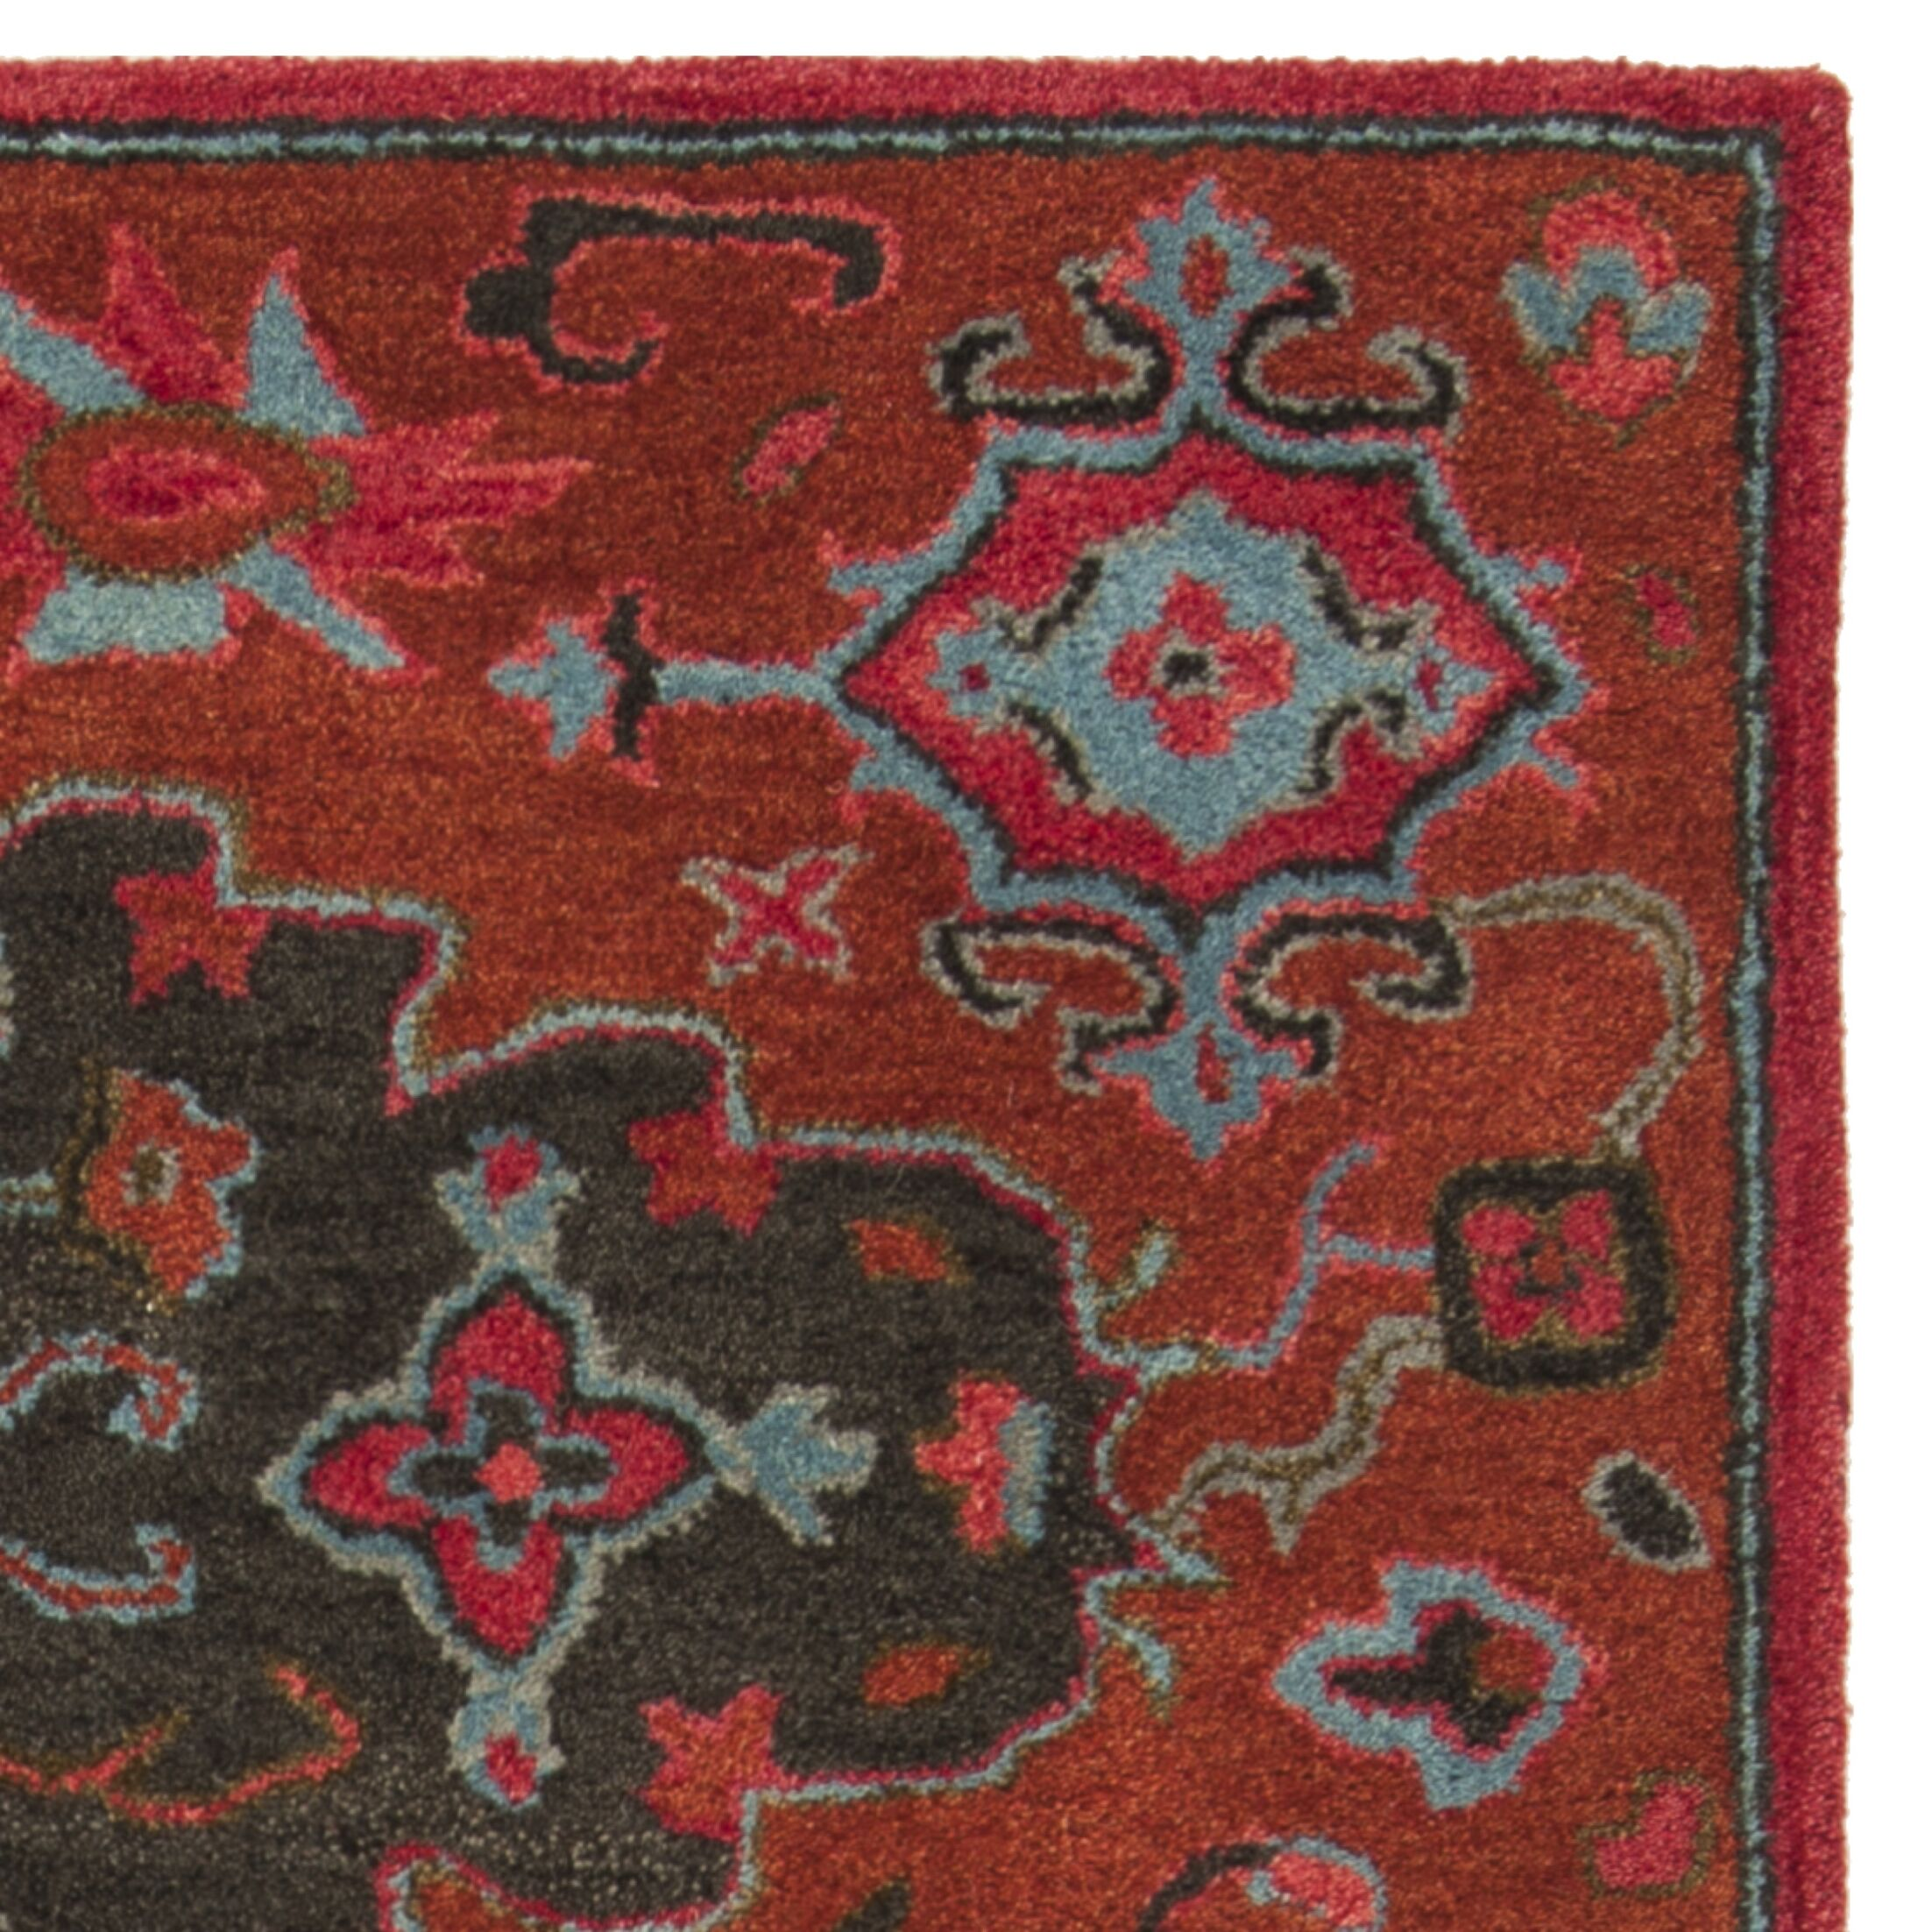 Carlsen Hand Tufted Wool Rust Area Rug Rug Size: Rectangle 3' x 5'